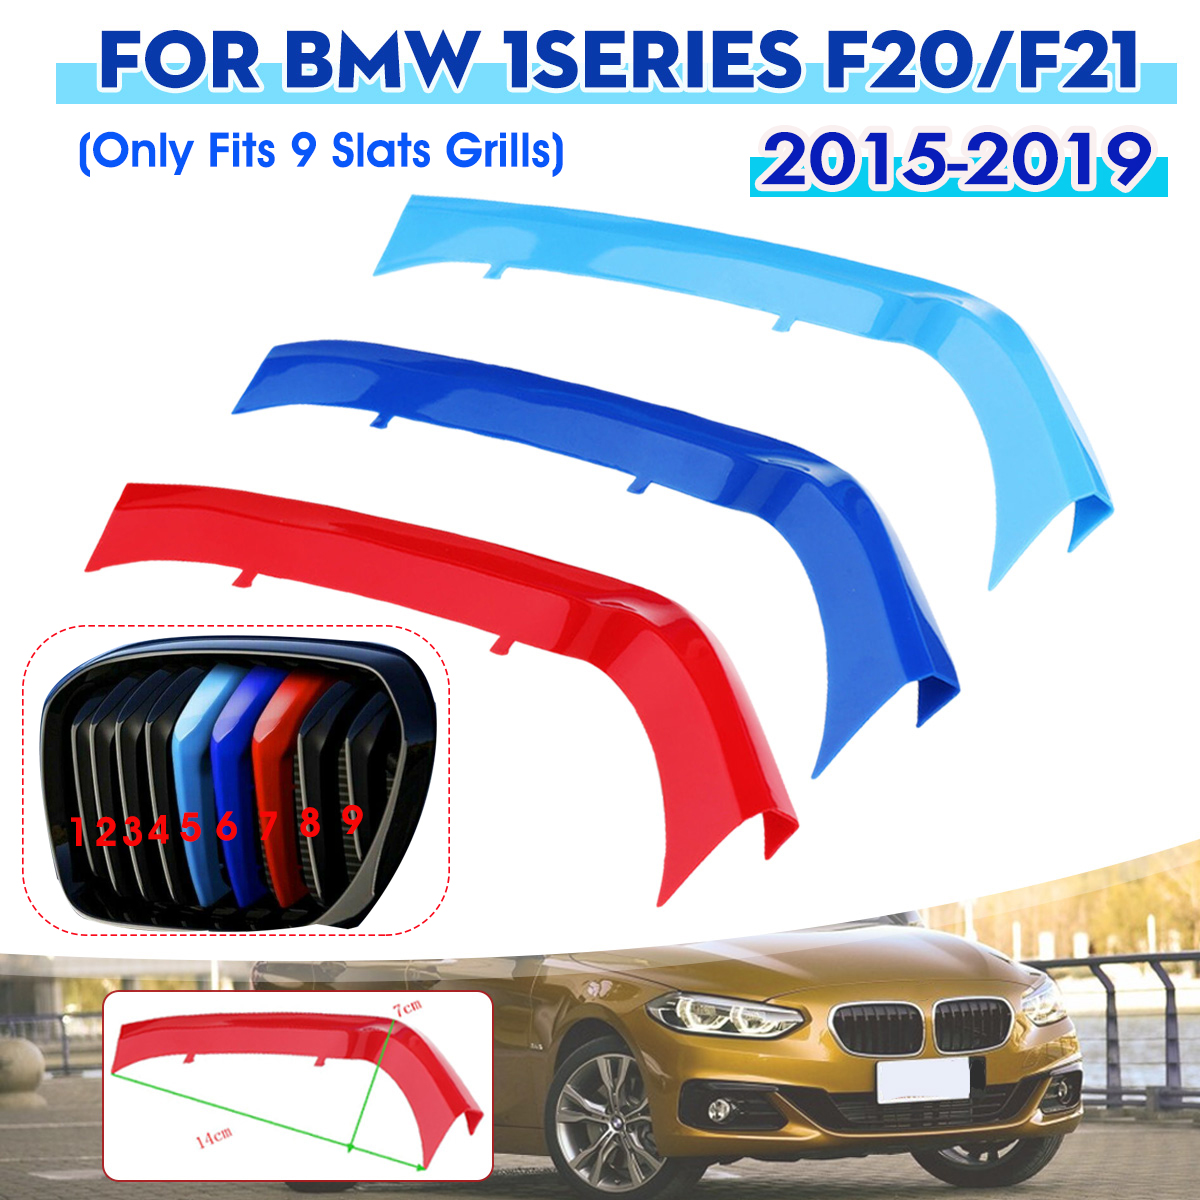 3pcs For <font><b>BMW</b></font> 1-Series F20/<font><b>F21</b></font> 2015 2016 2017 2018 9 Bar Car Front Grille Trim Sport Strips Cover <font><b>Stickers</b></font> Accessories image